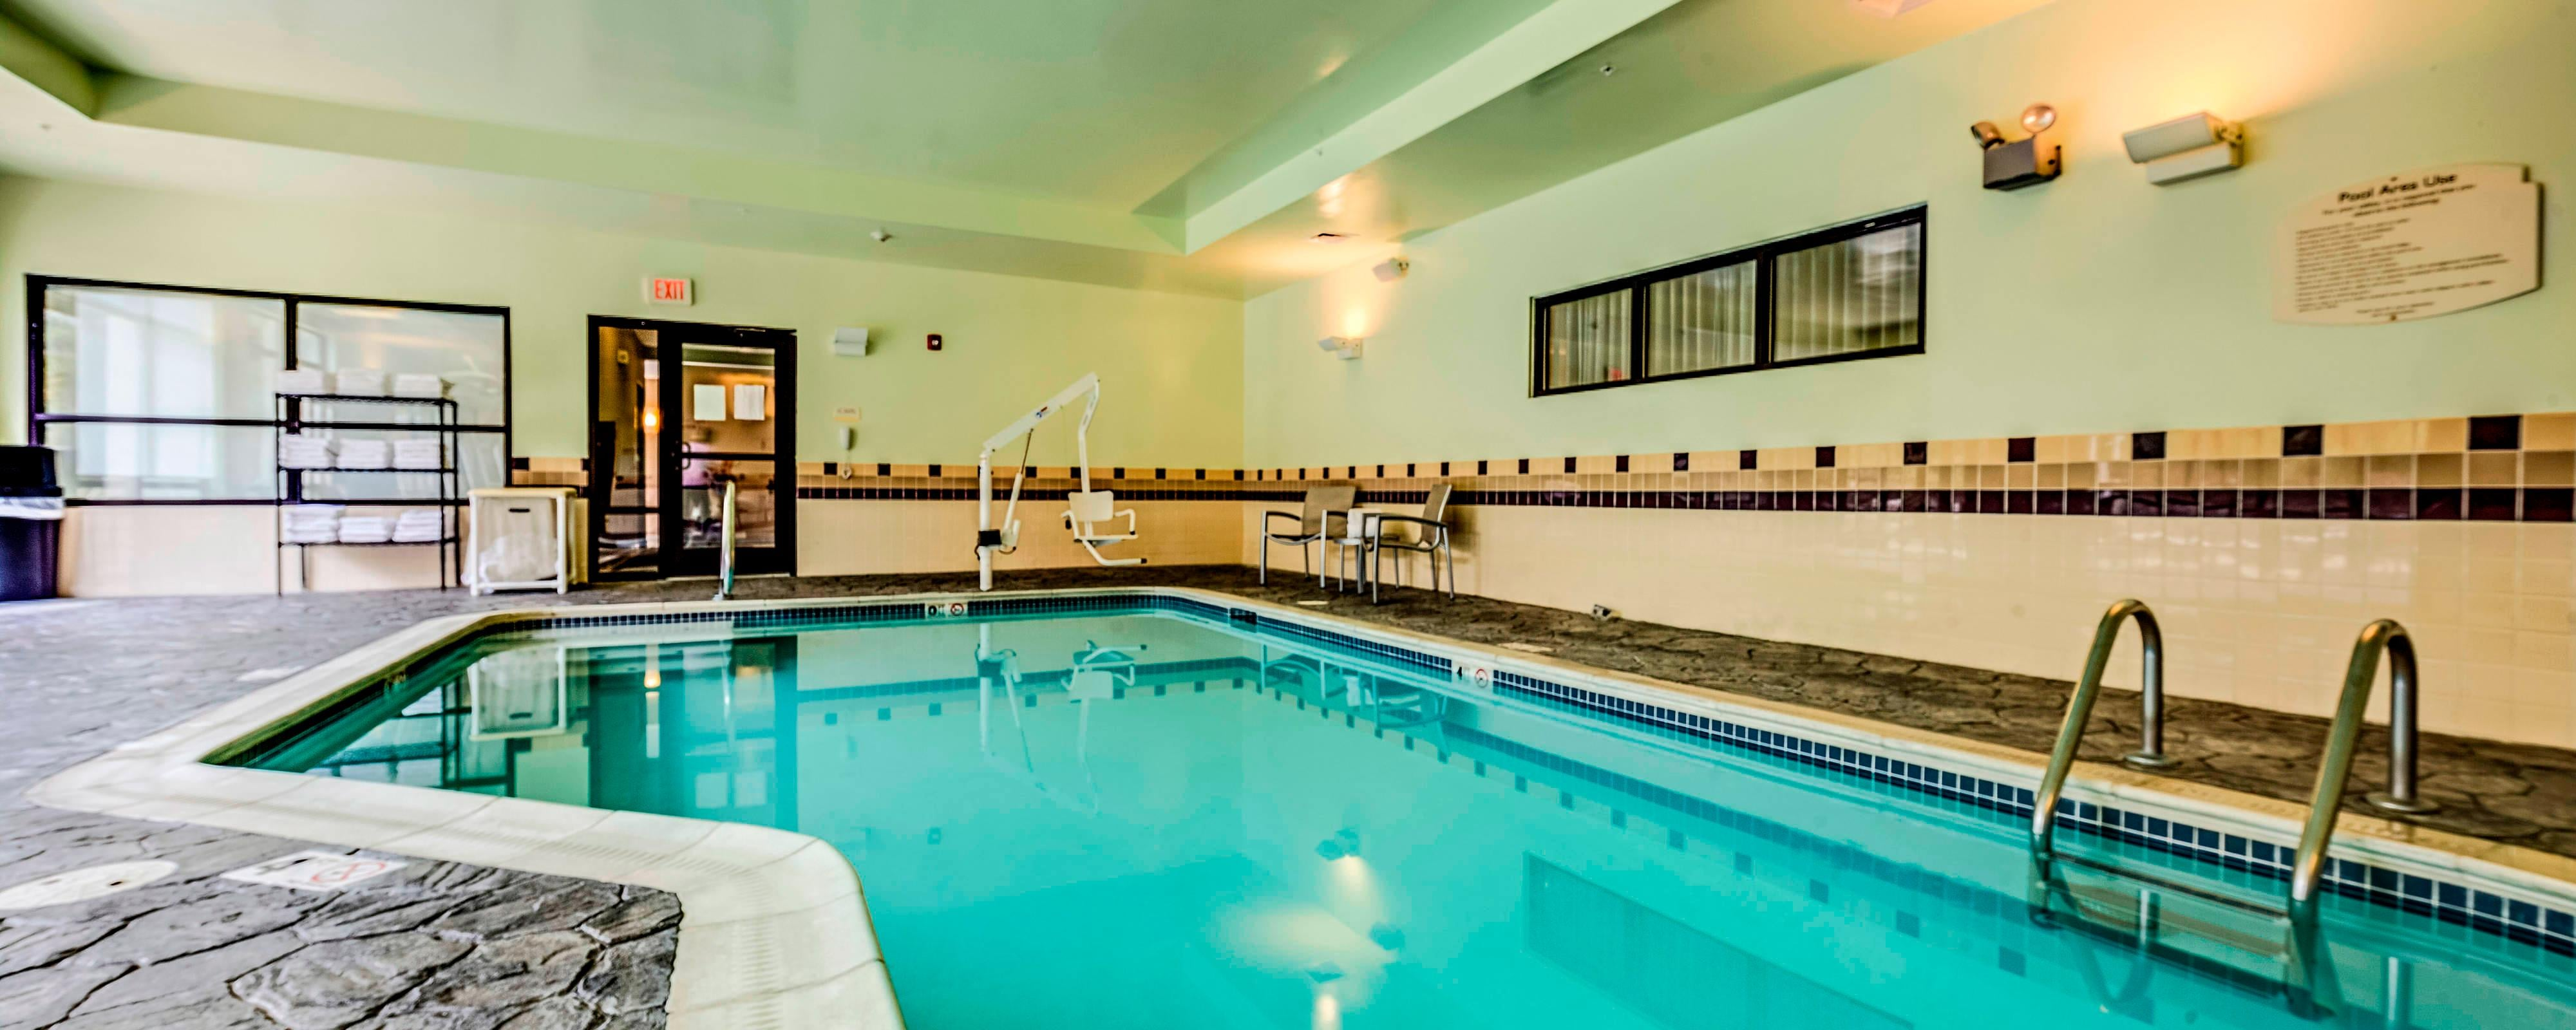 Dayton Ohio Hotel Indoor Pool